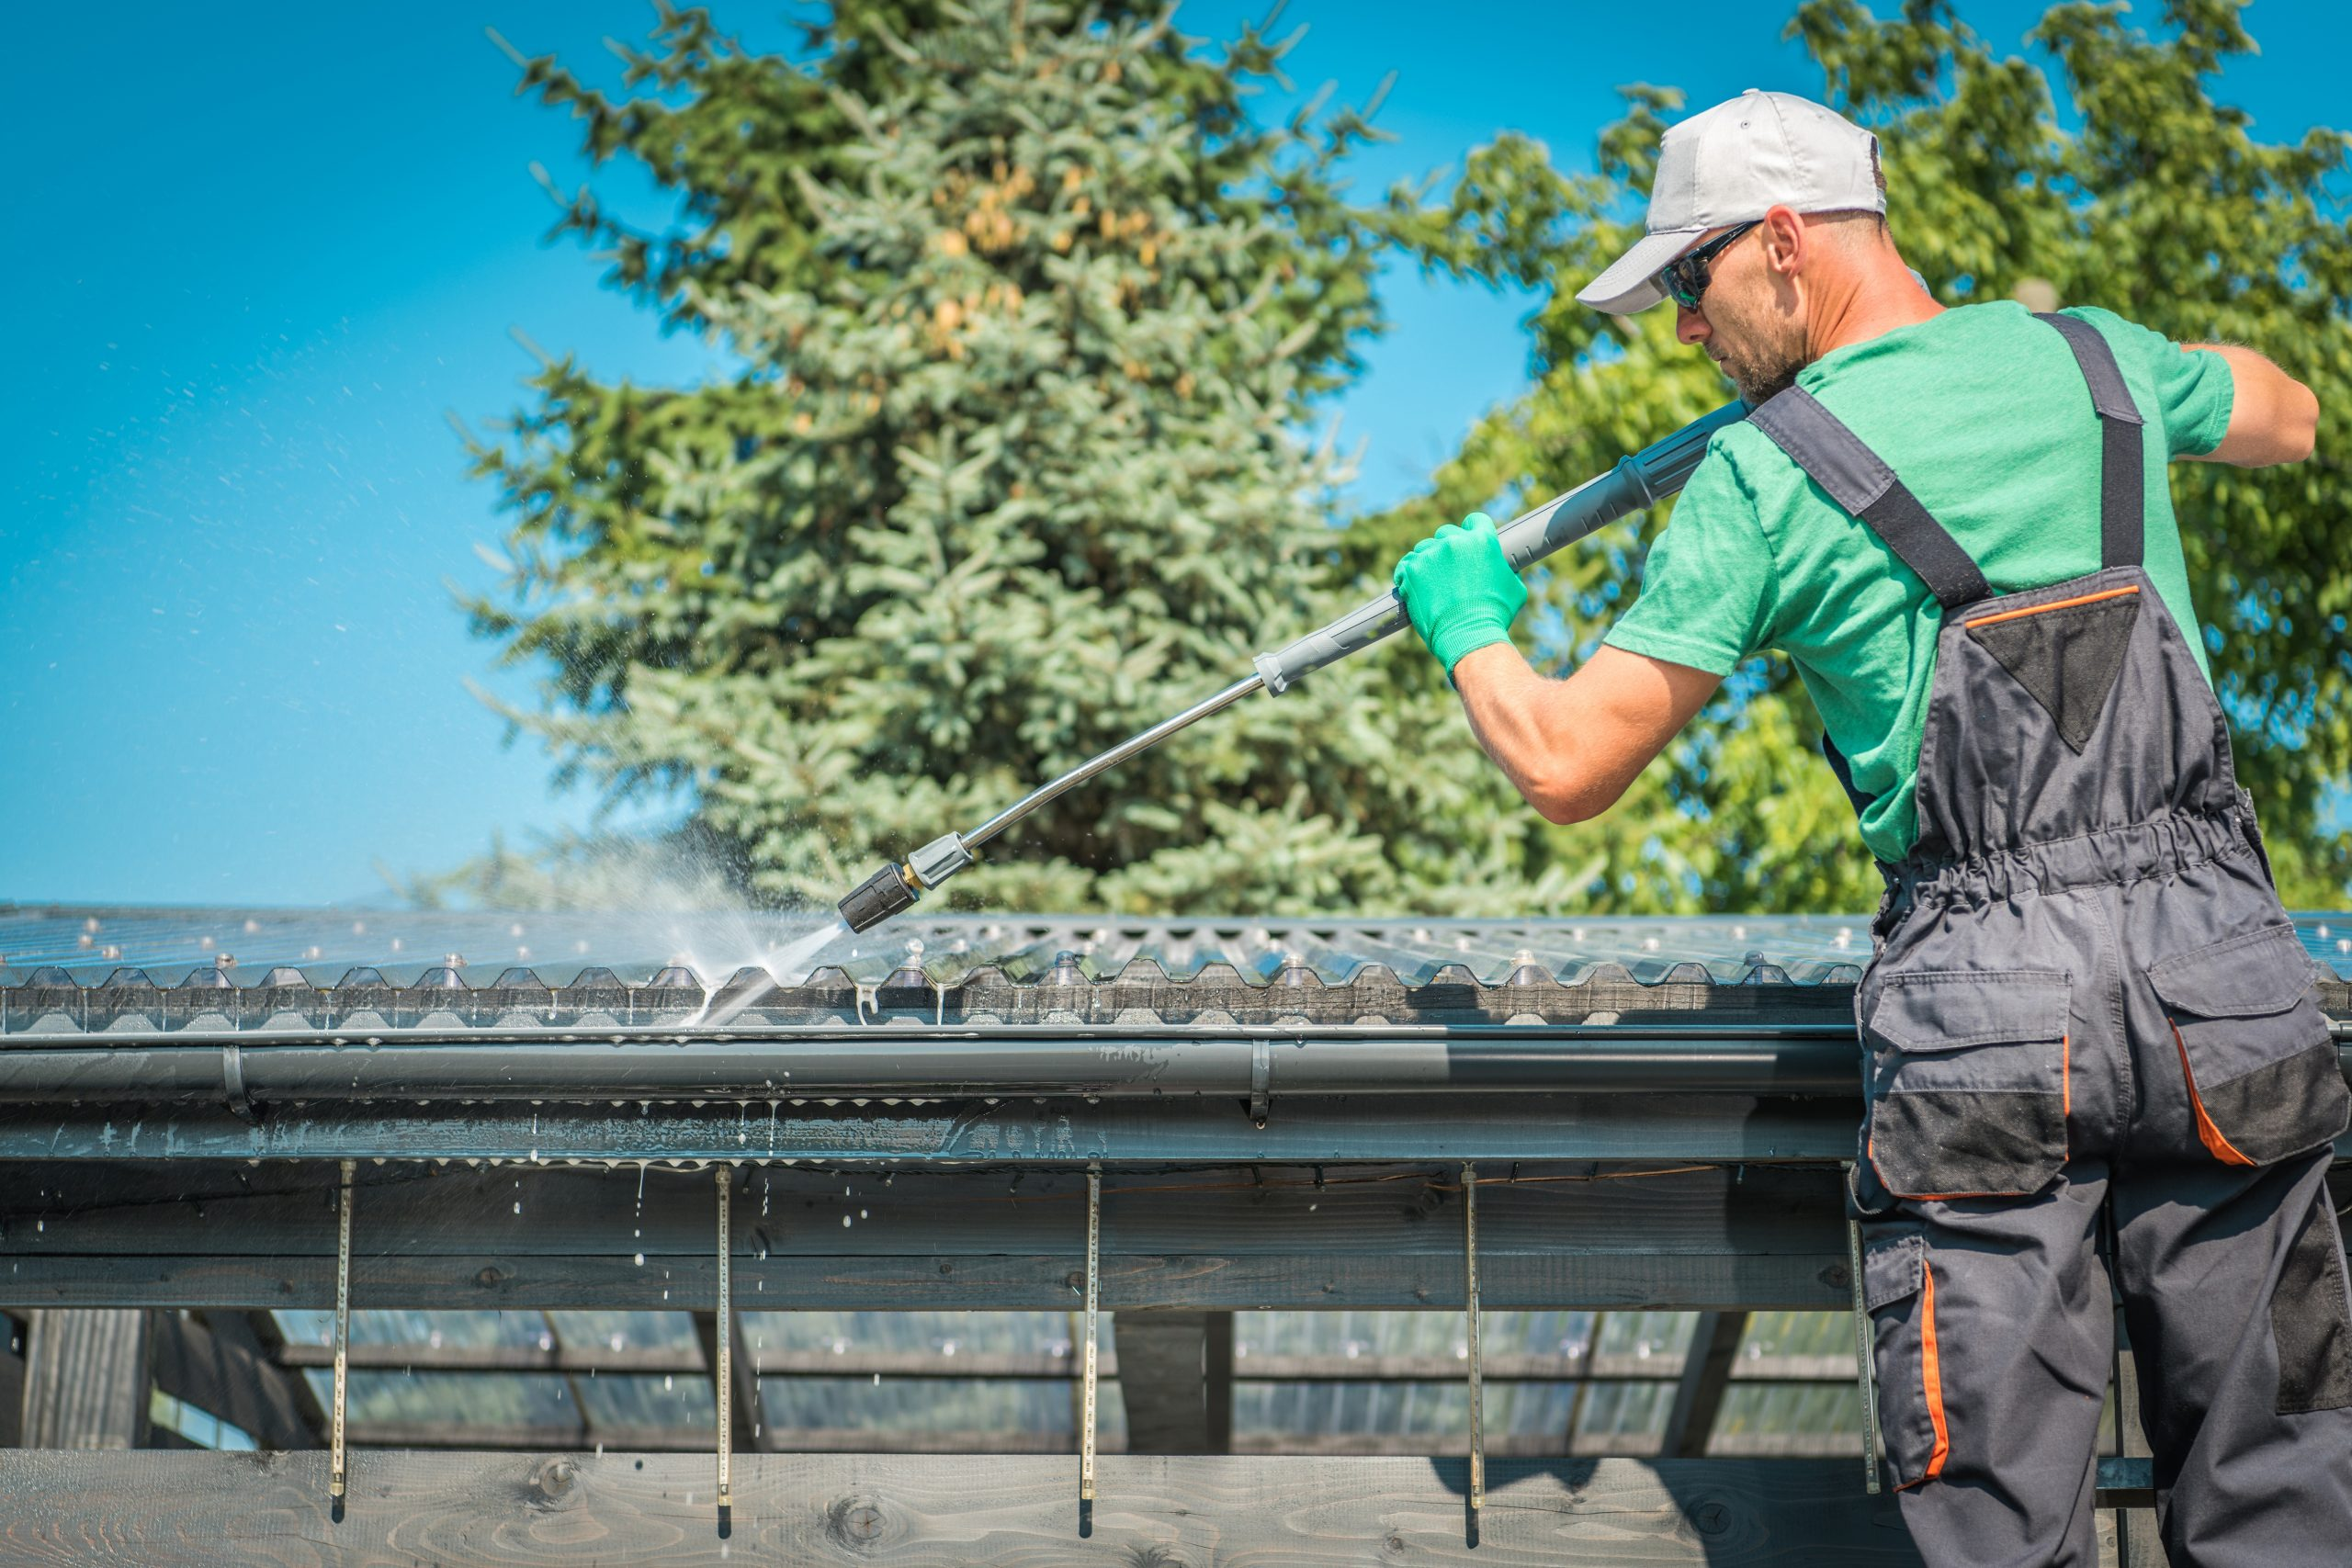 Gutter Cleaning - How To Guide